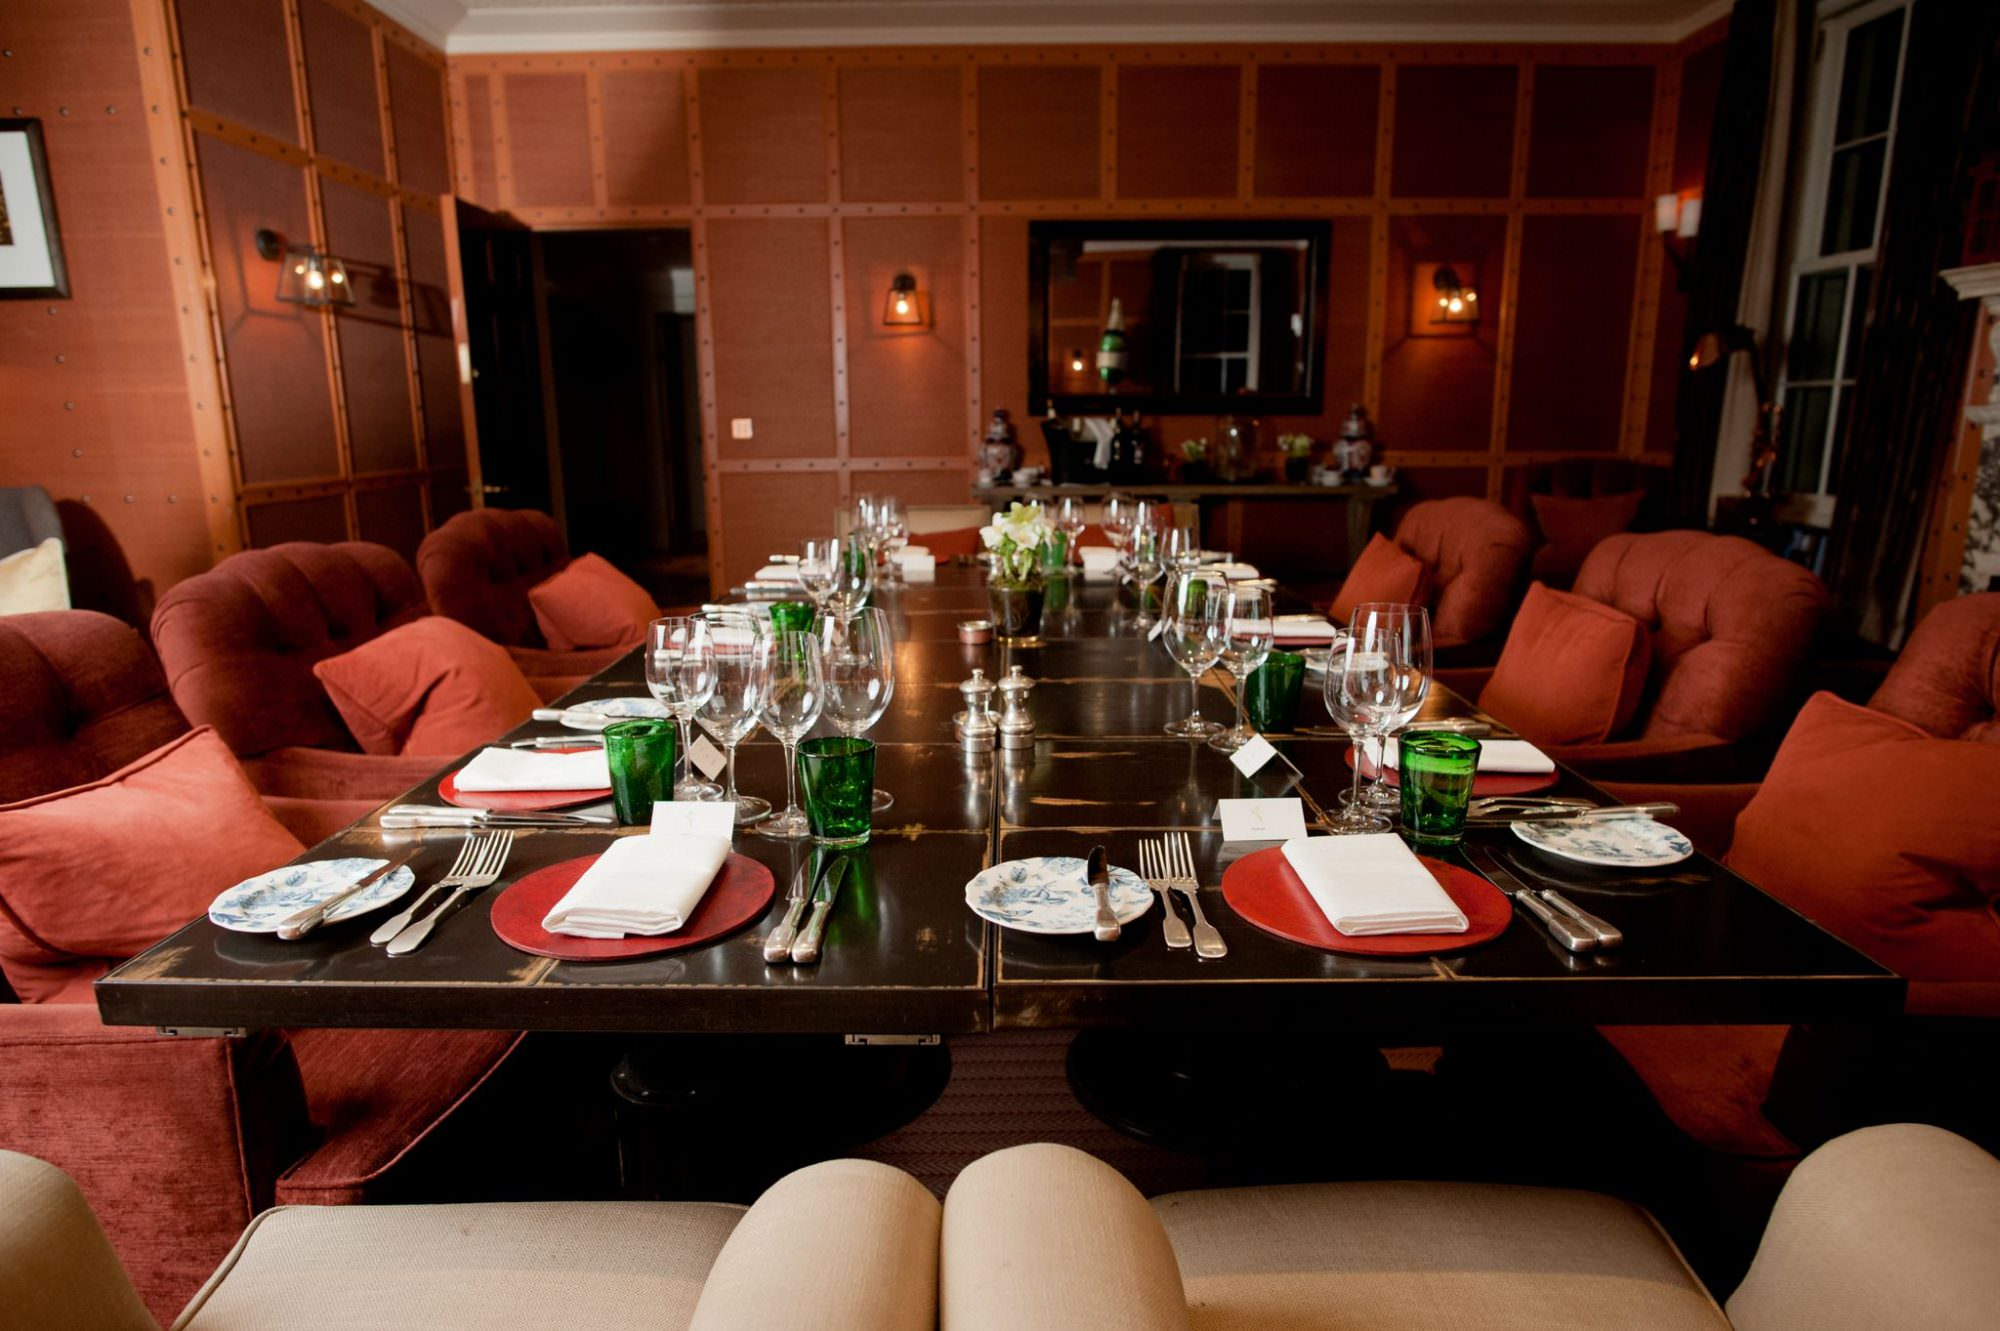 Private Dining in the Limewood Hotel Study